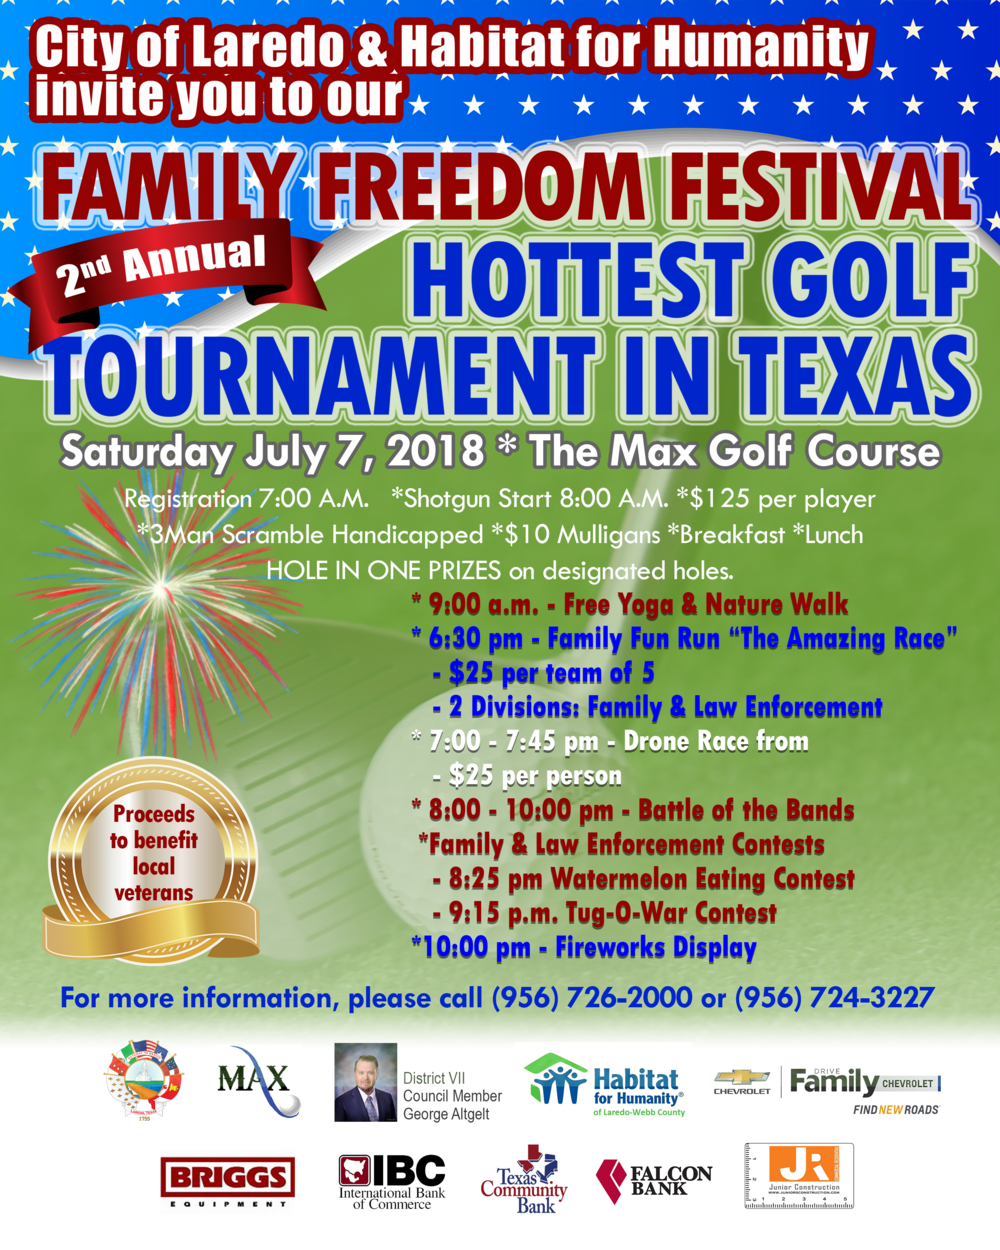 Family Freedom Festival And 2nd Annual Hottest GolfTournament In Texas U2014  Laredo Habitat For Humanity